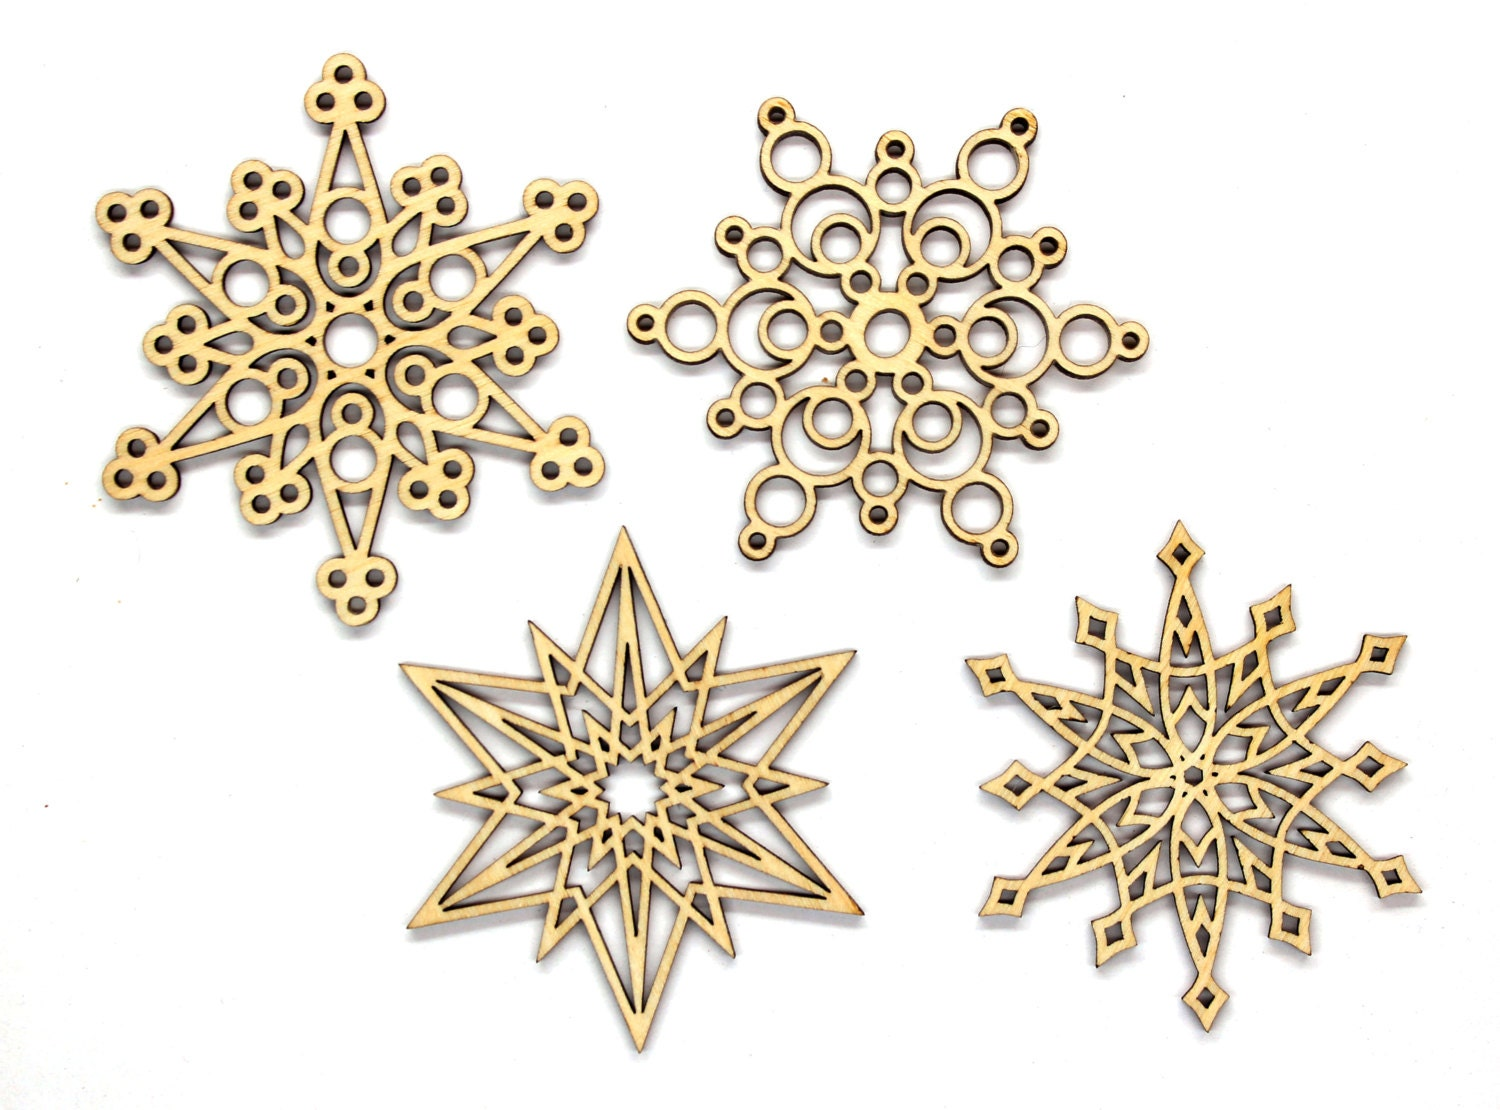 Christmas snowflake ornaments - Set Of 12 Unpainted Laser Cut Christmas Snowflakes Diy Ornaments Large Wooden Snowflakes Blanks 70 Mm